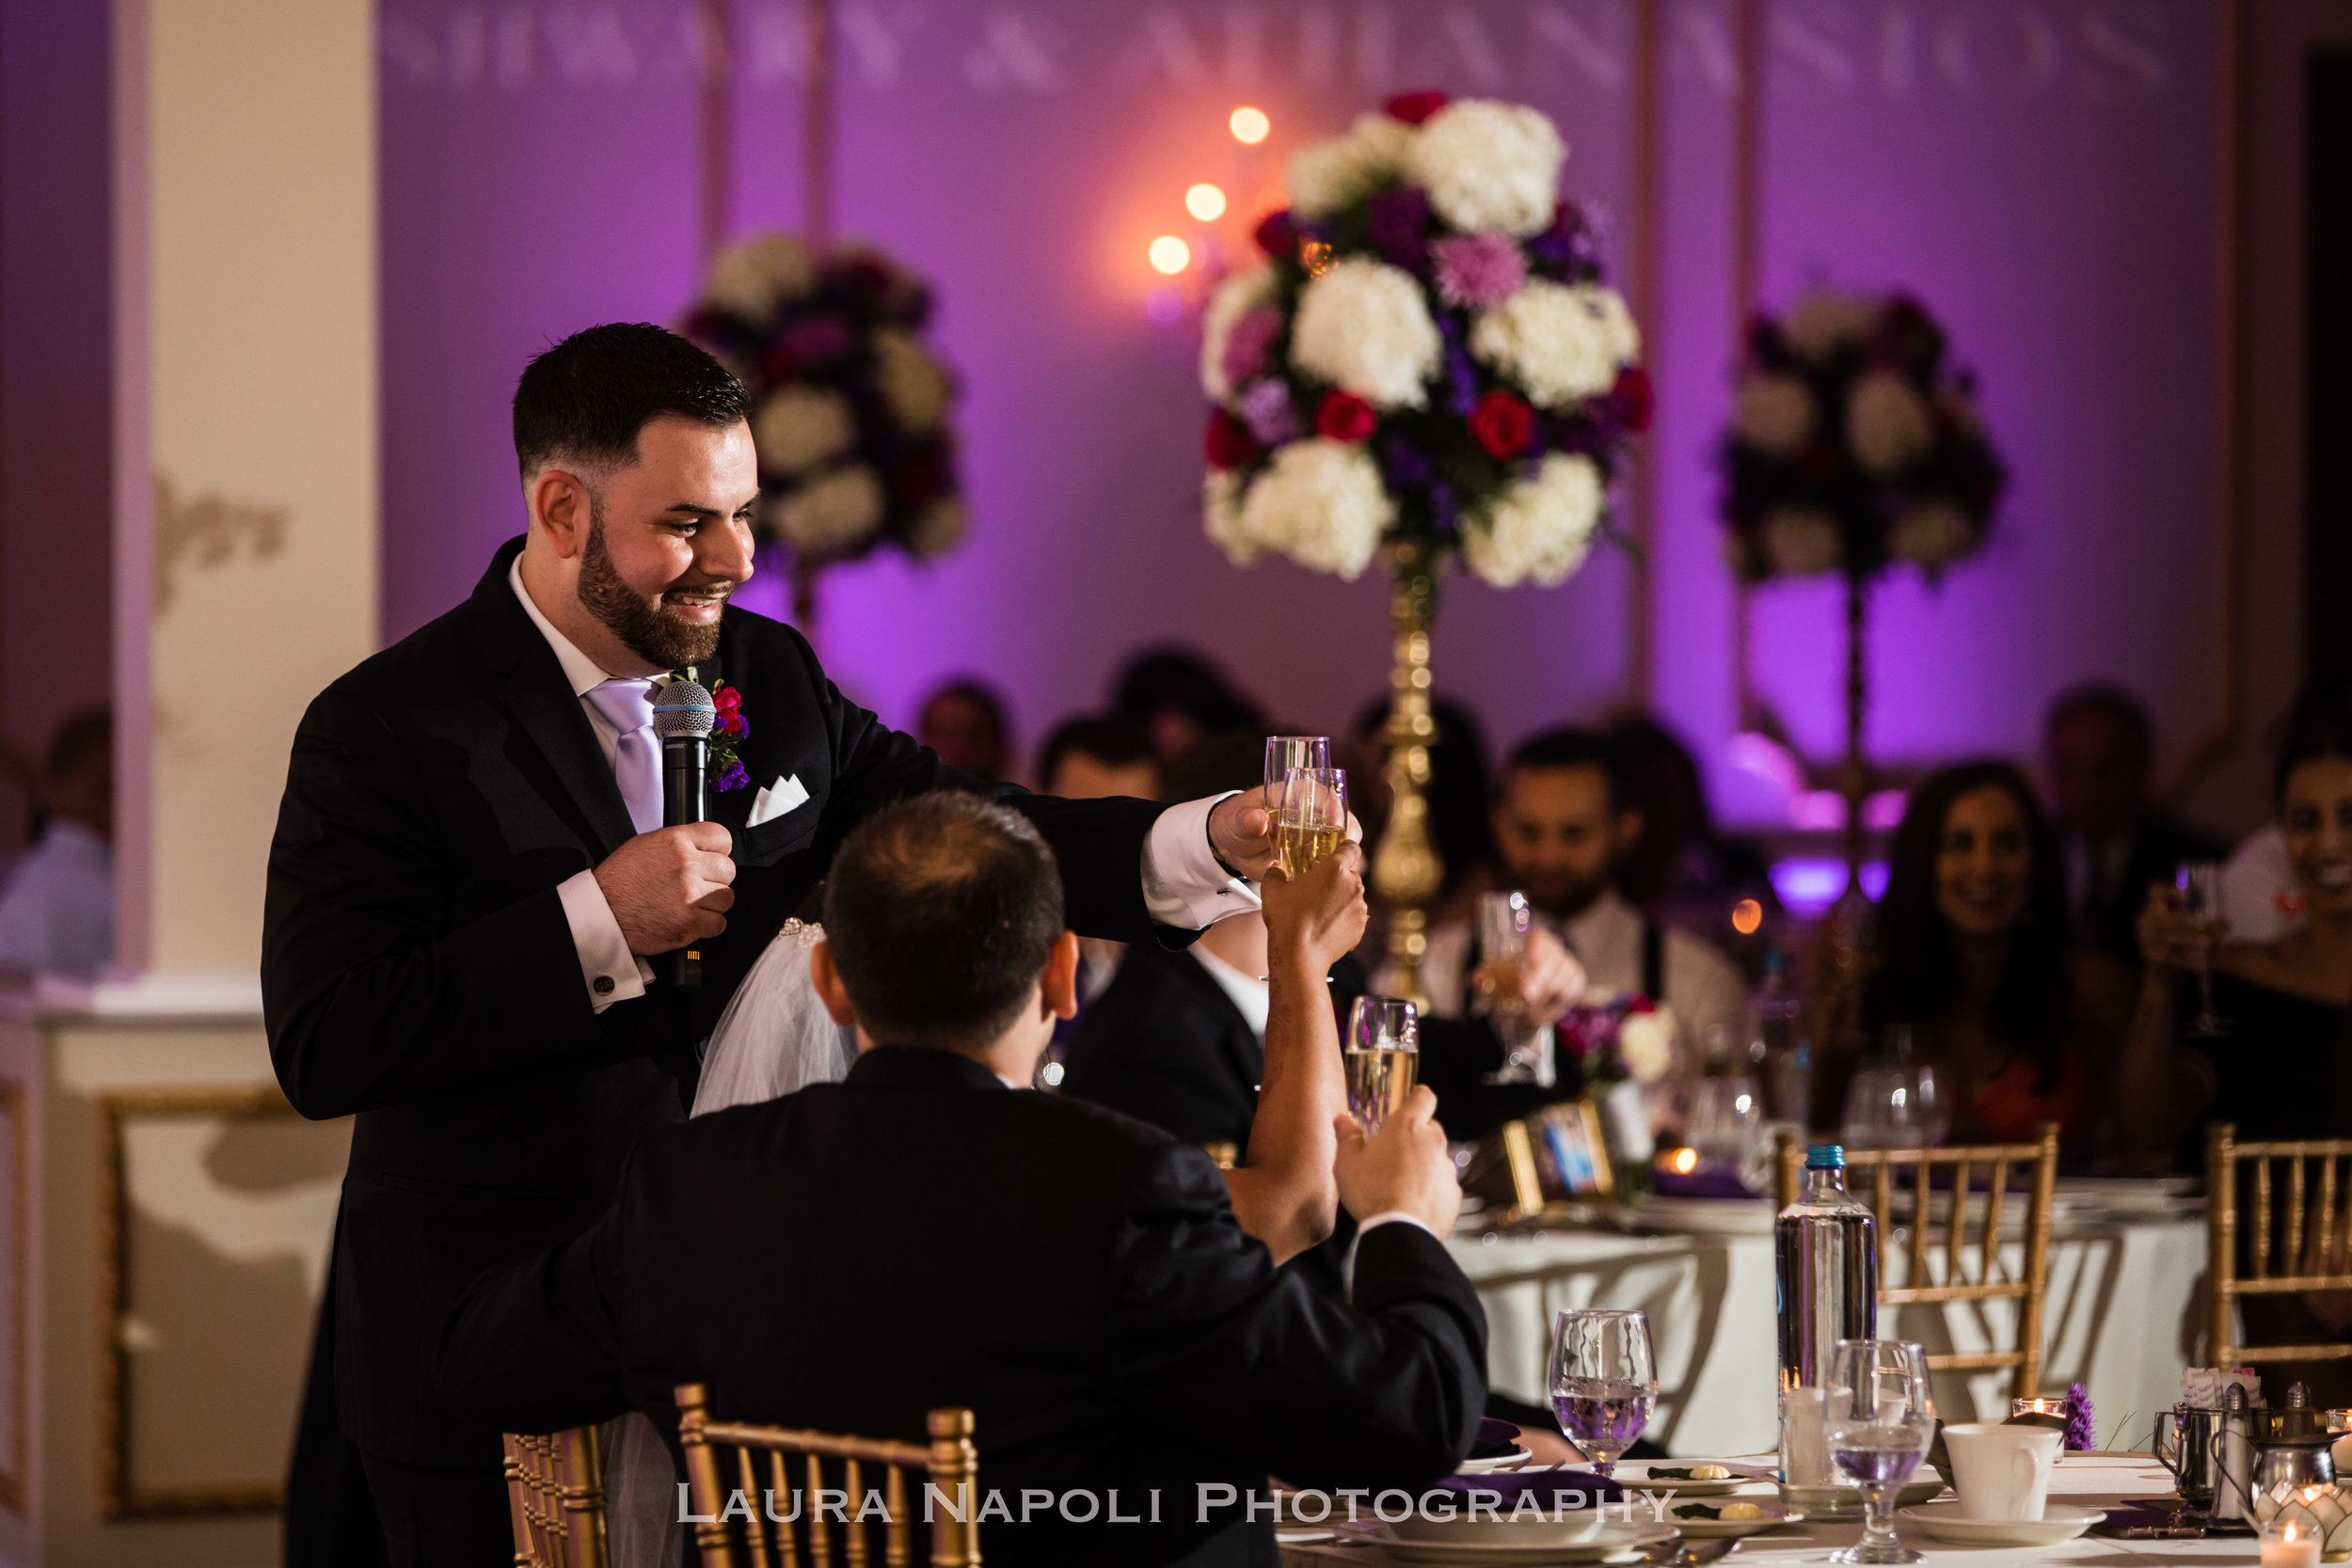 Scotlandrungolfclubweddingsouthjerseyweddingphotographer -36.jpg